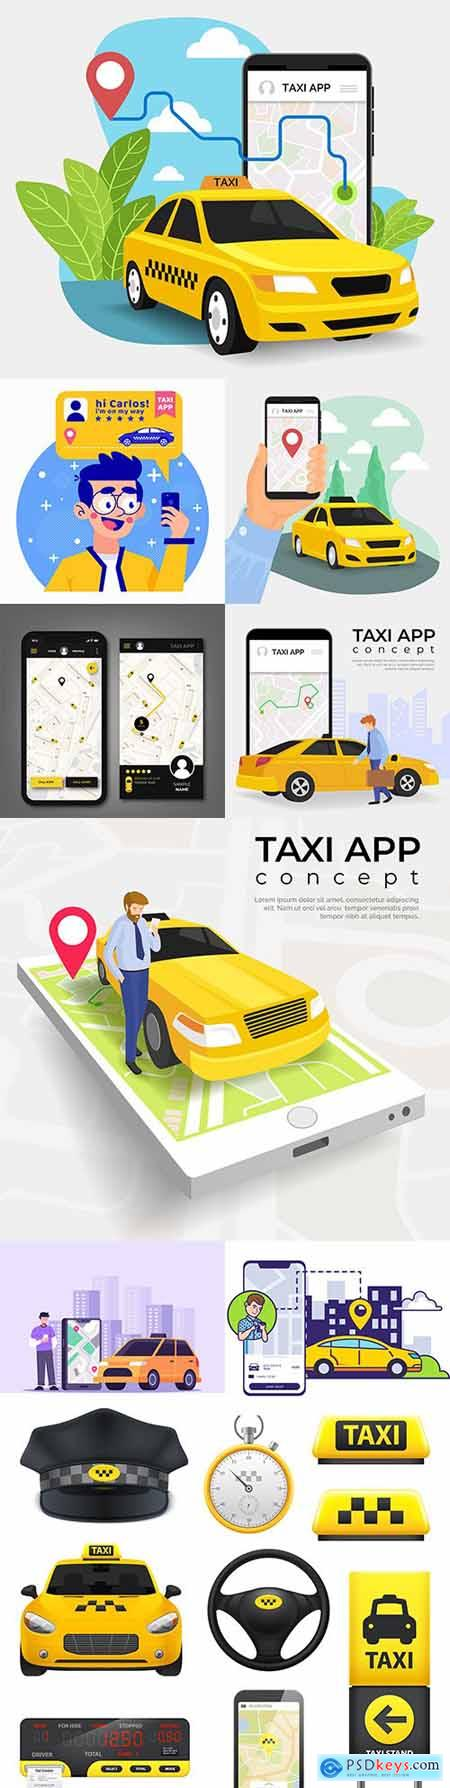 Taxi concept application service illustration design